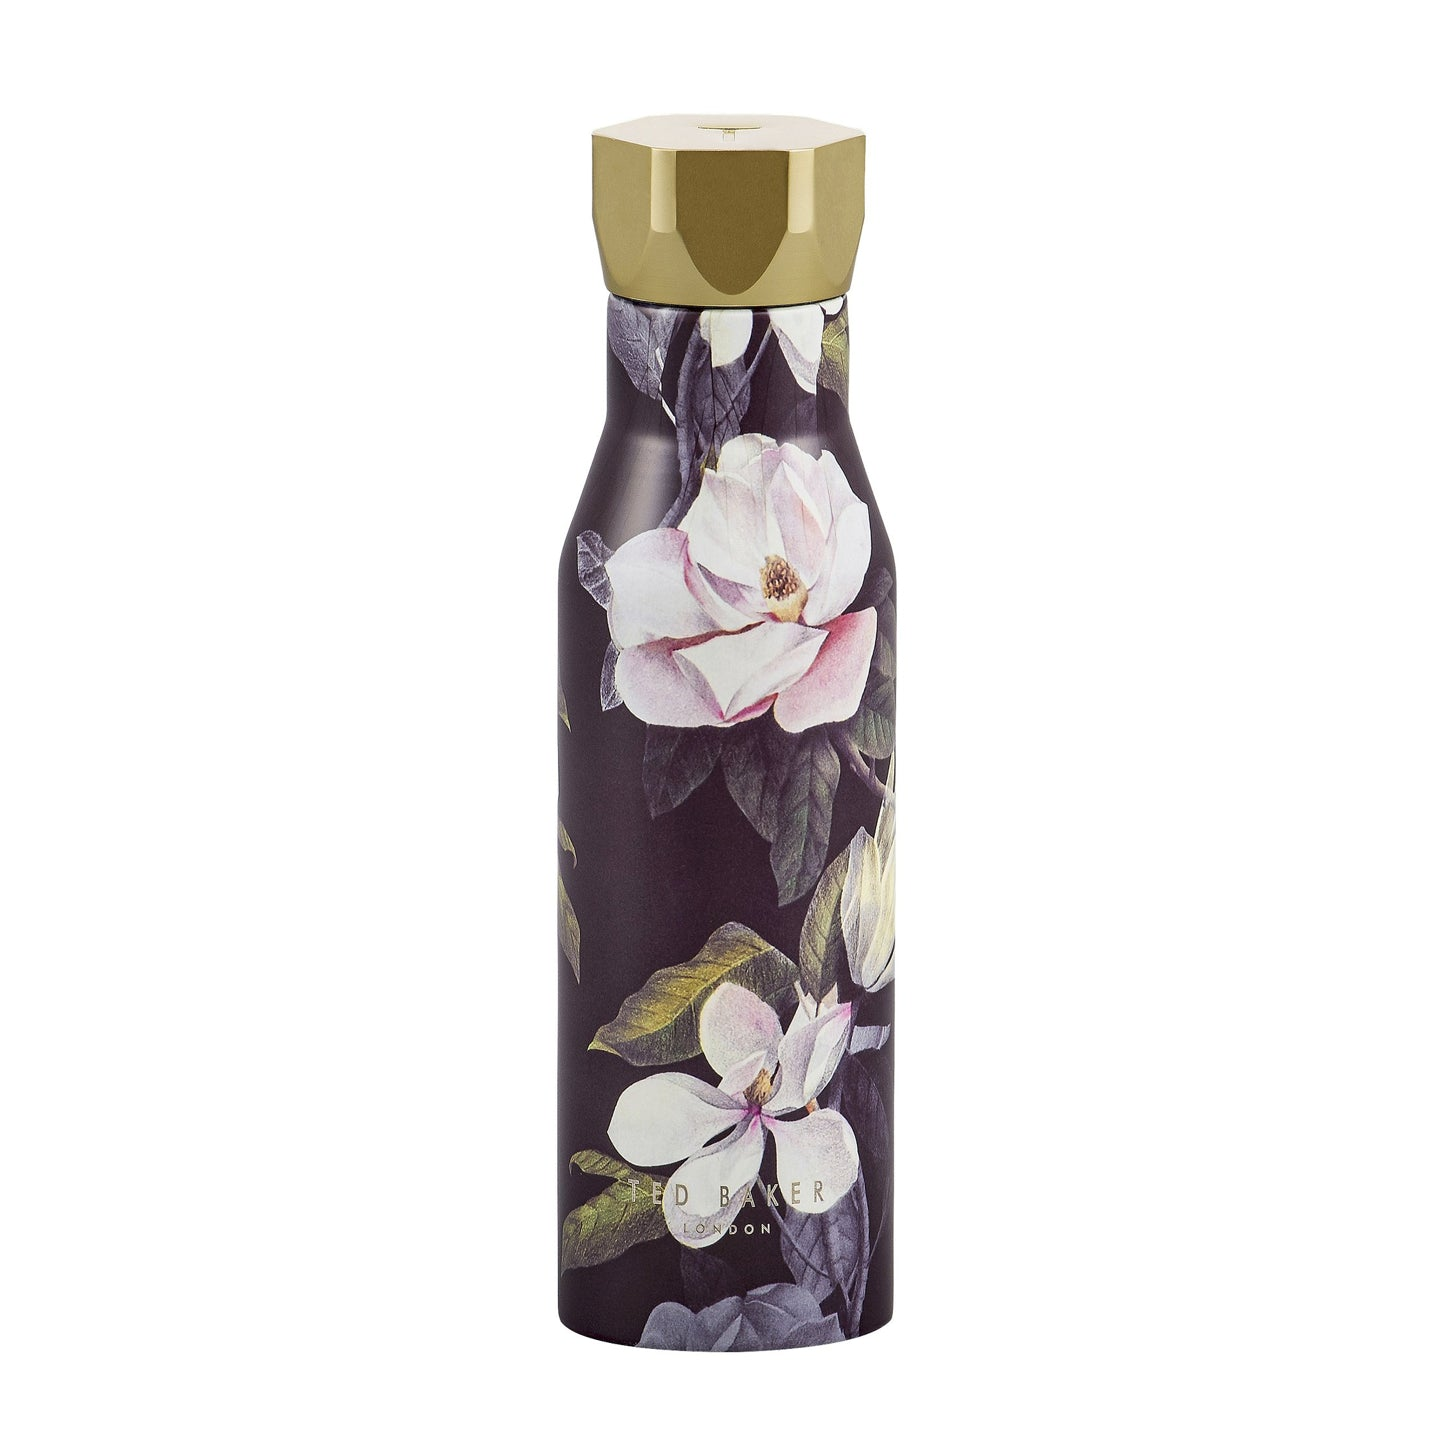 Ted Baker Water Bottle | Black Opal